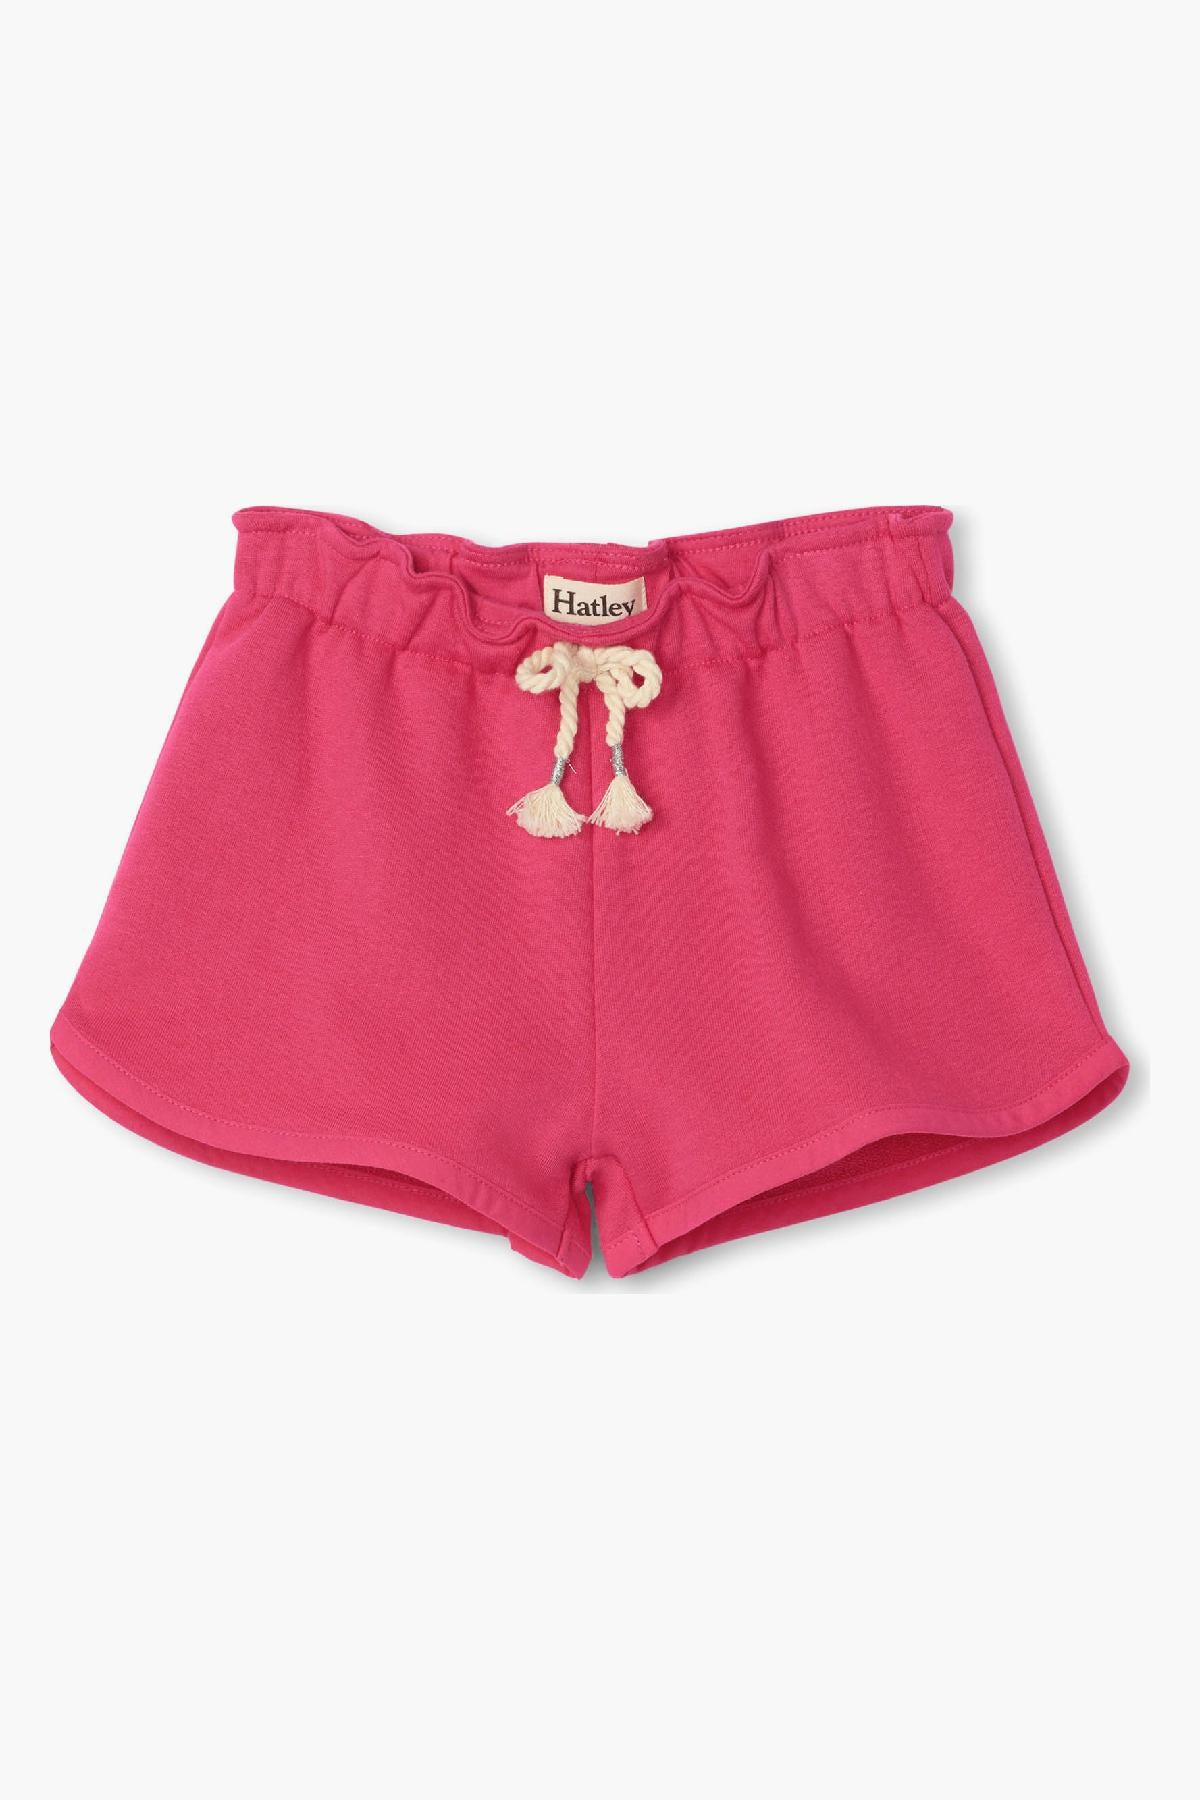 Hatley French Terry Paper Bag Girls Shorts